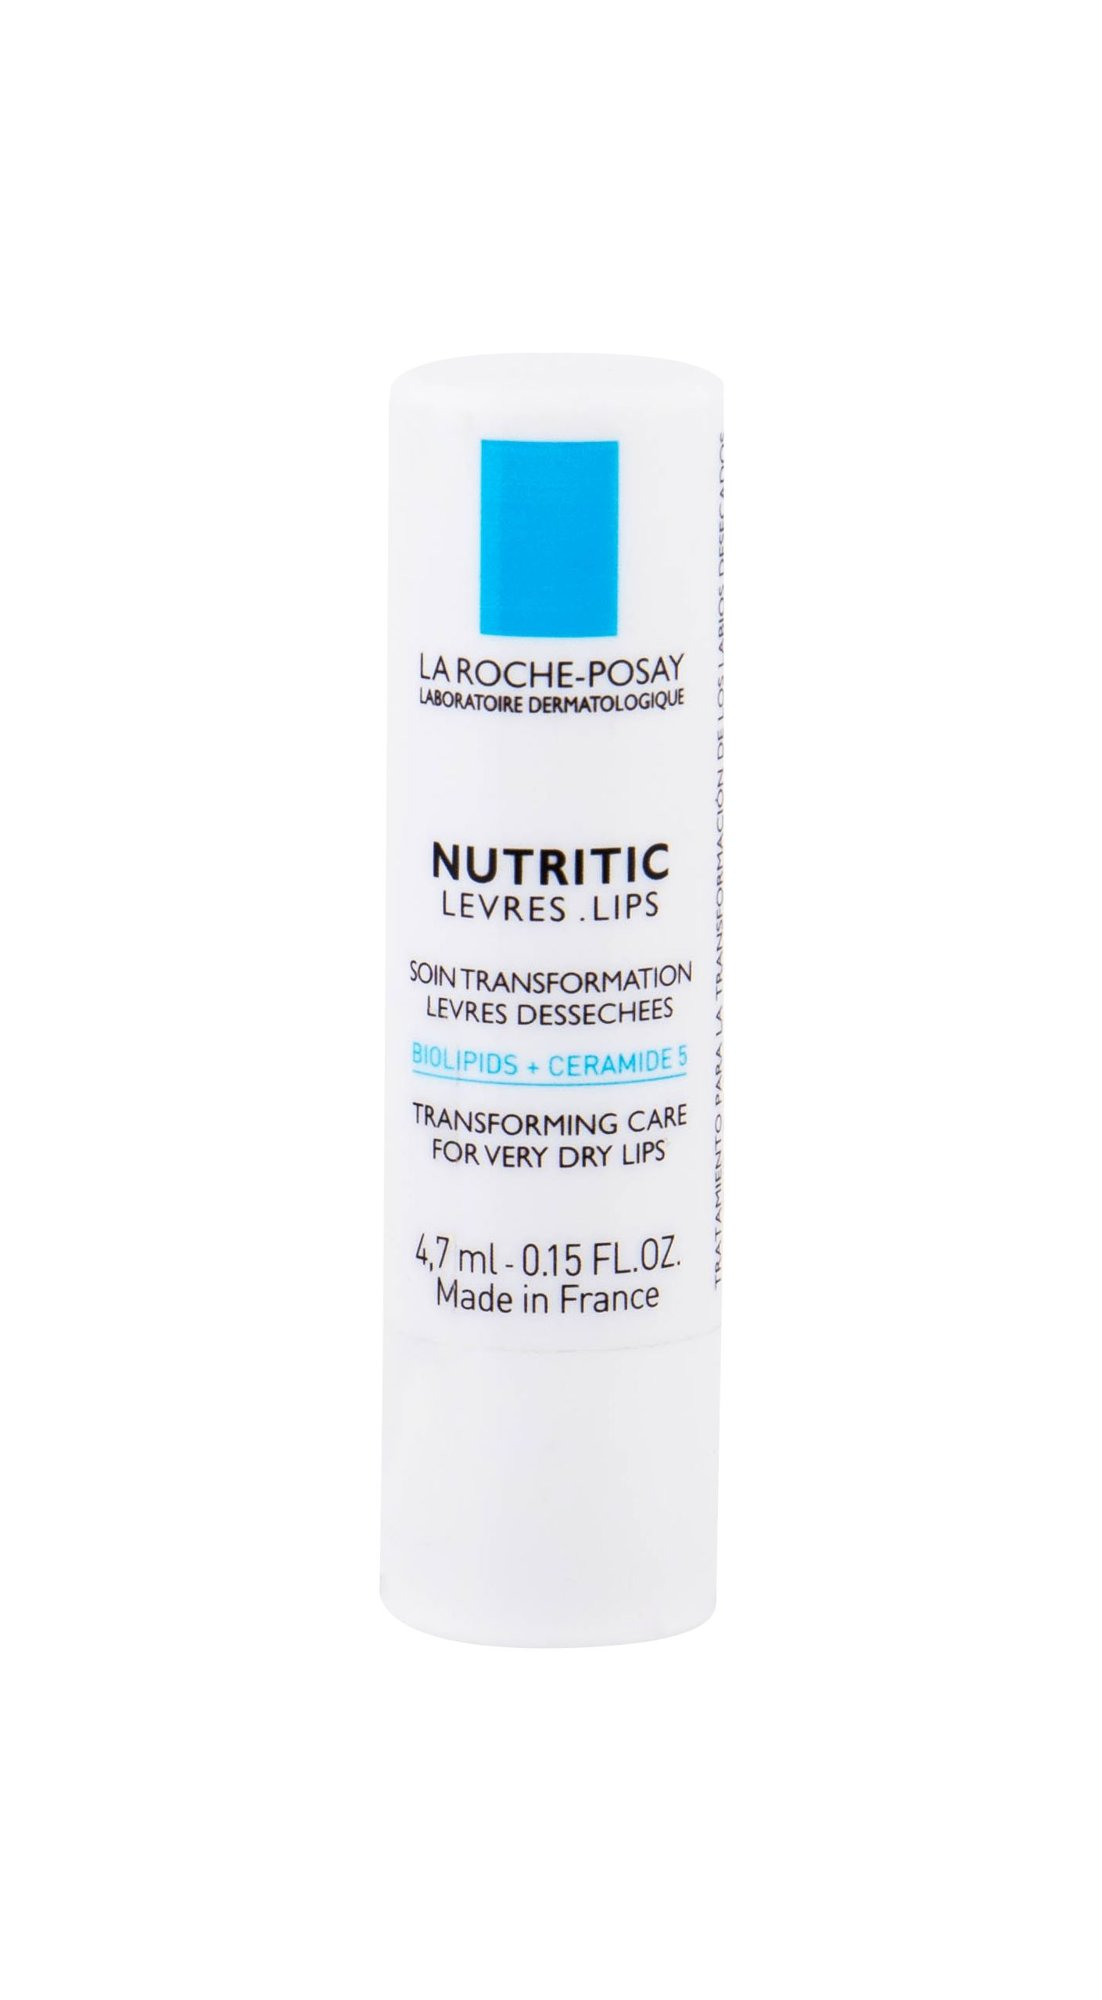 La Roche-Posay Nutritic Lip Balm 4,7ml